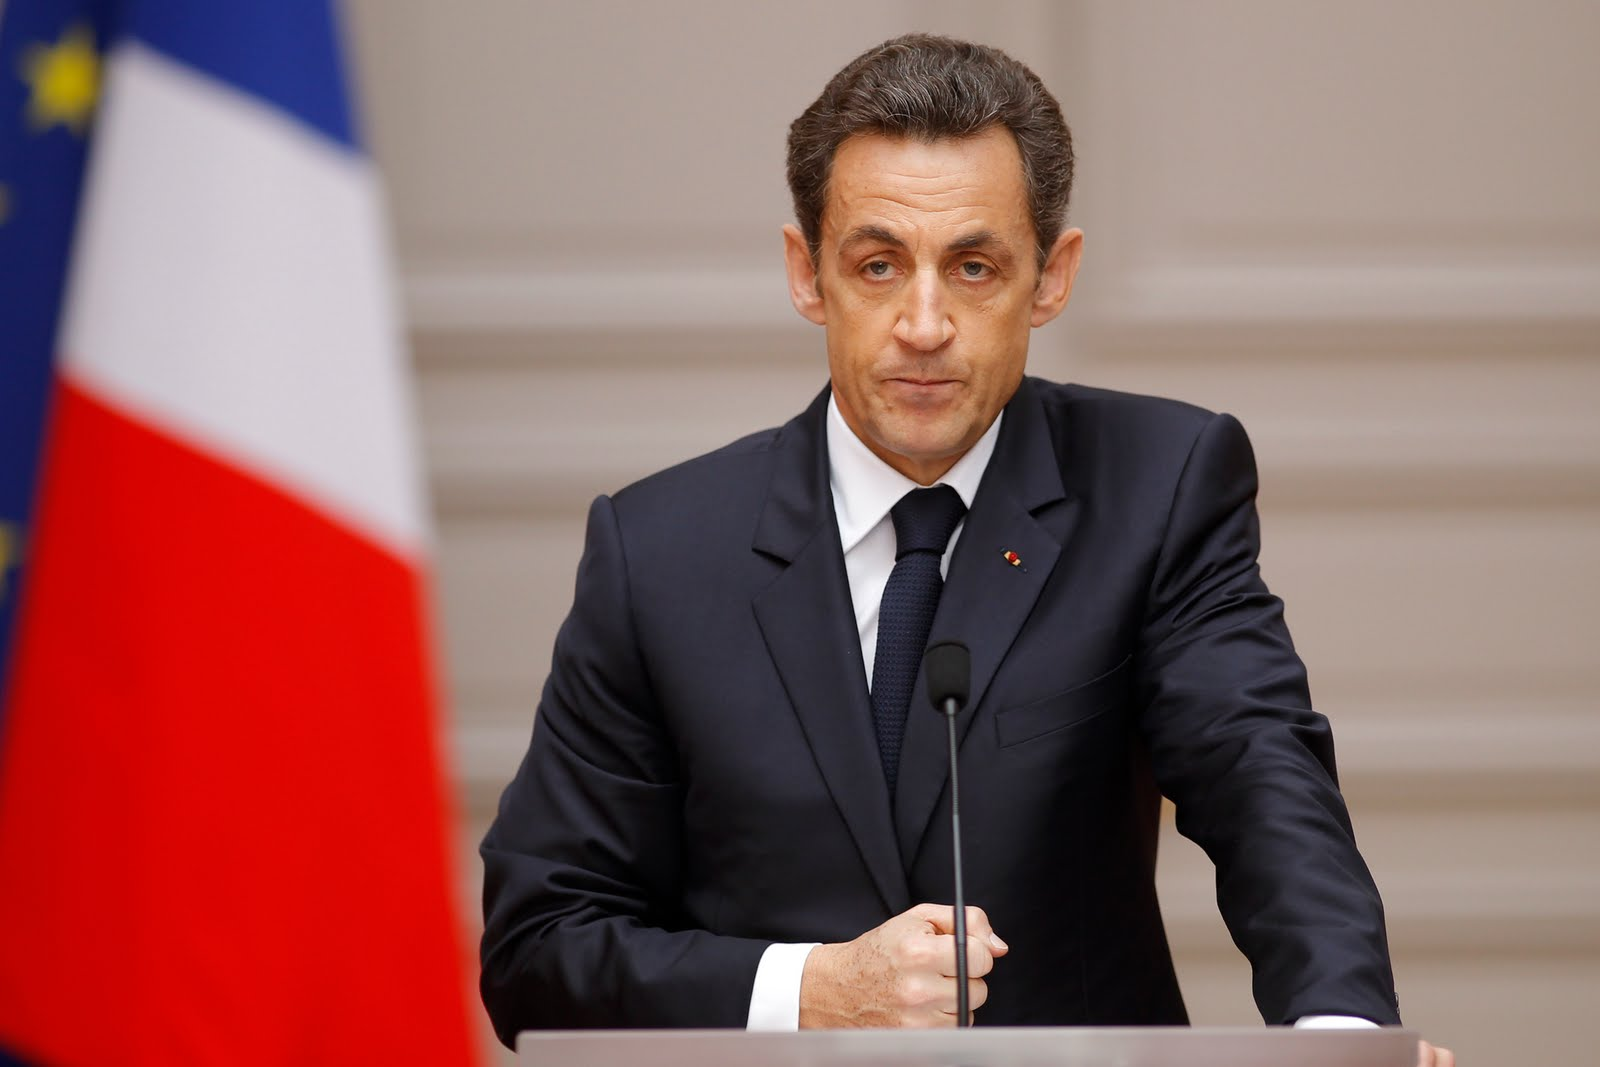 France's President Nicolas Sarkozy delivers a speech after the weekly cabinet meeting at the Elysee Palace in Paris March 24, 2010. REUTERS/Benoit Tessier (FRANCE - Tags: POLITICS)